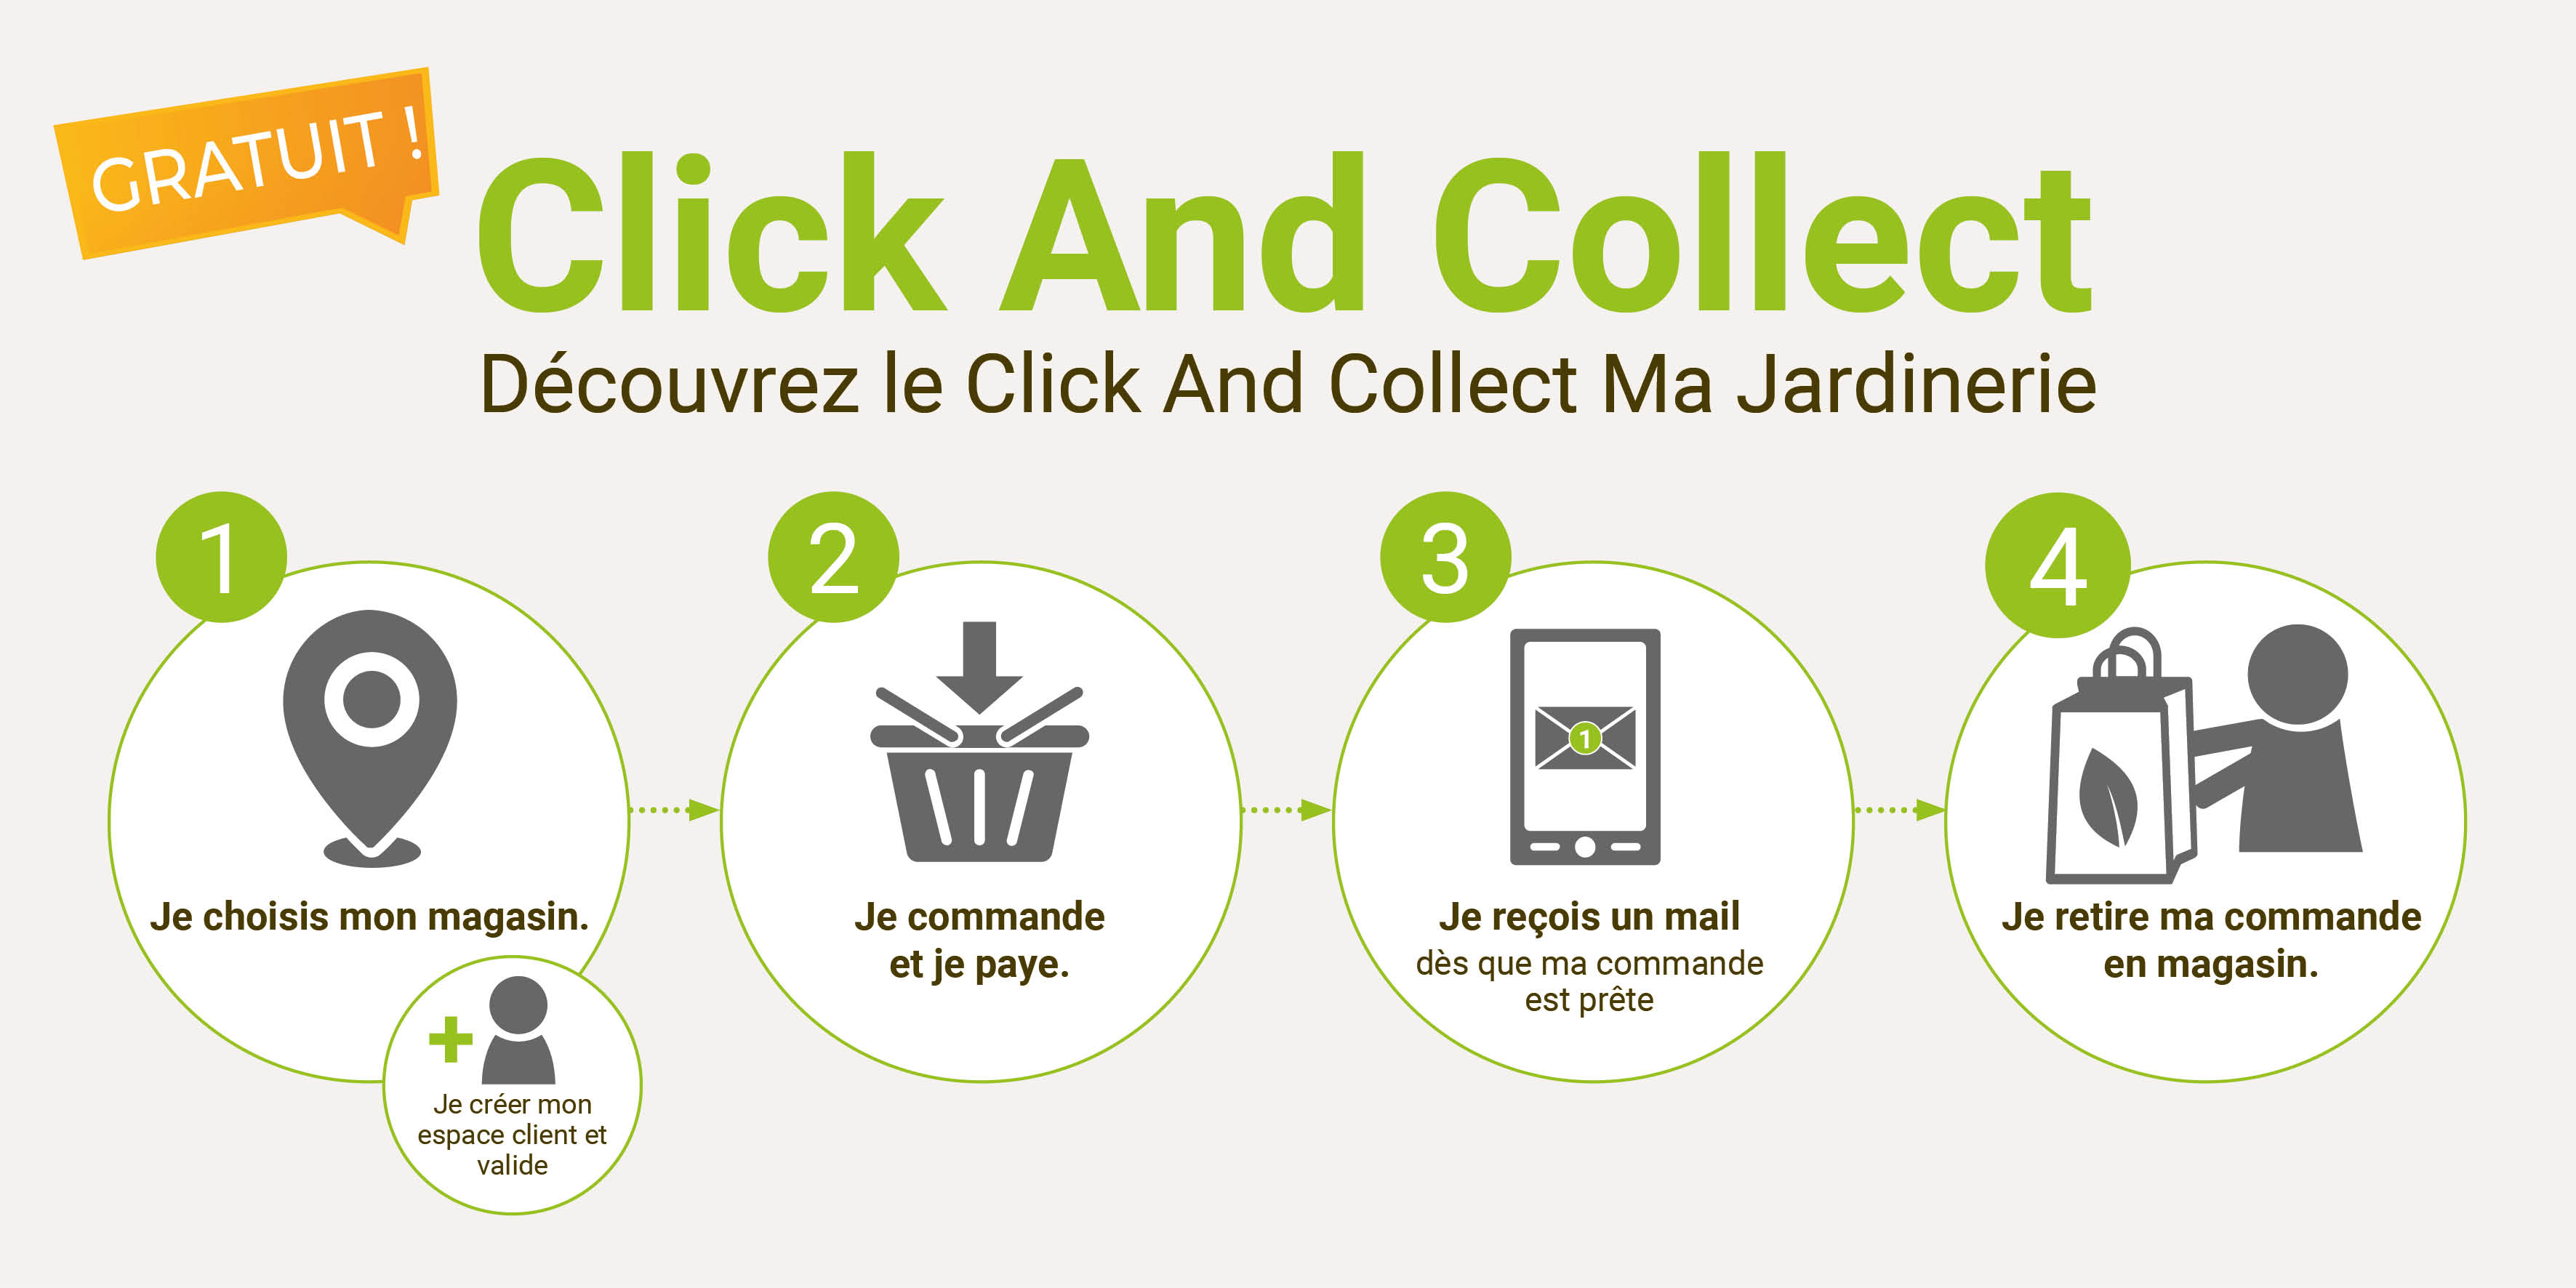 click and collect_1.jpg